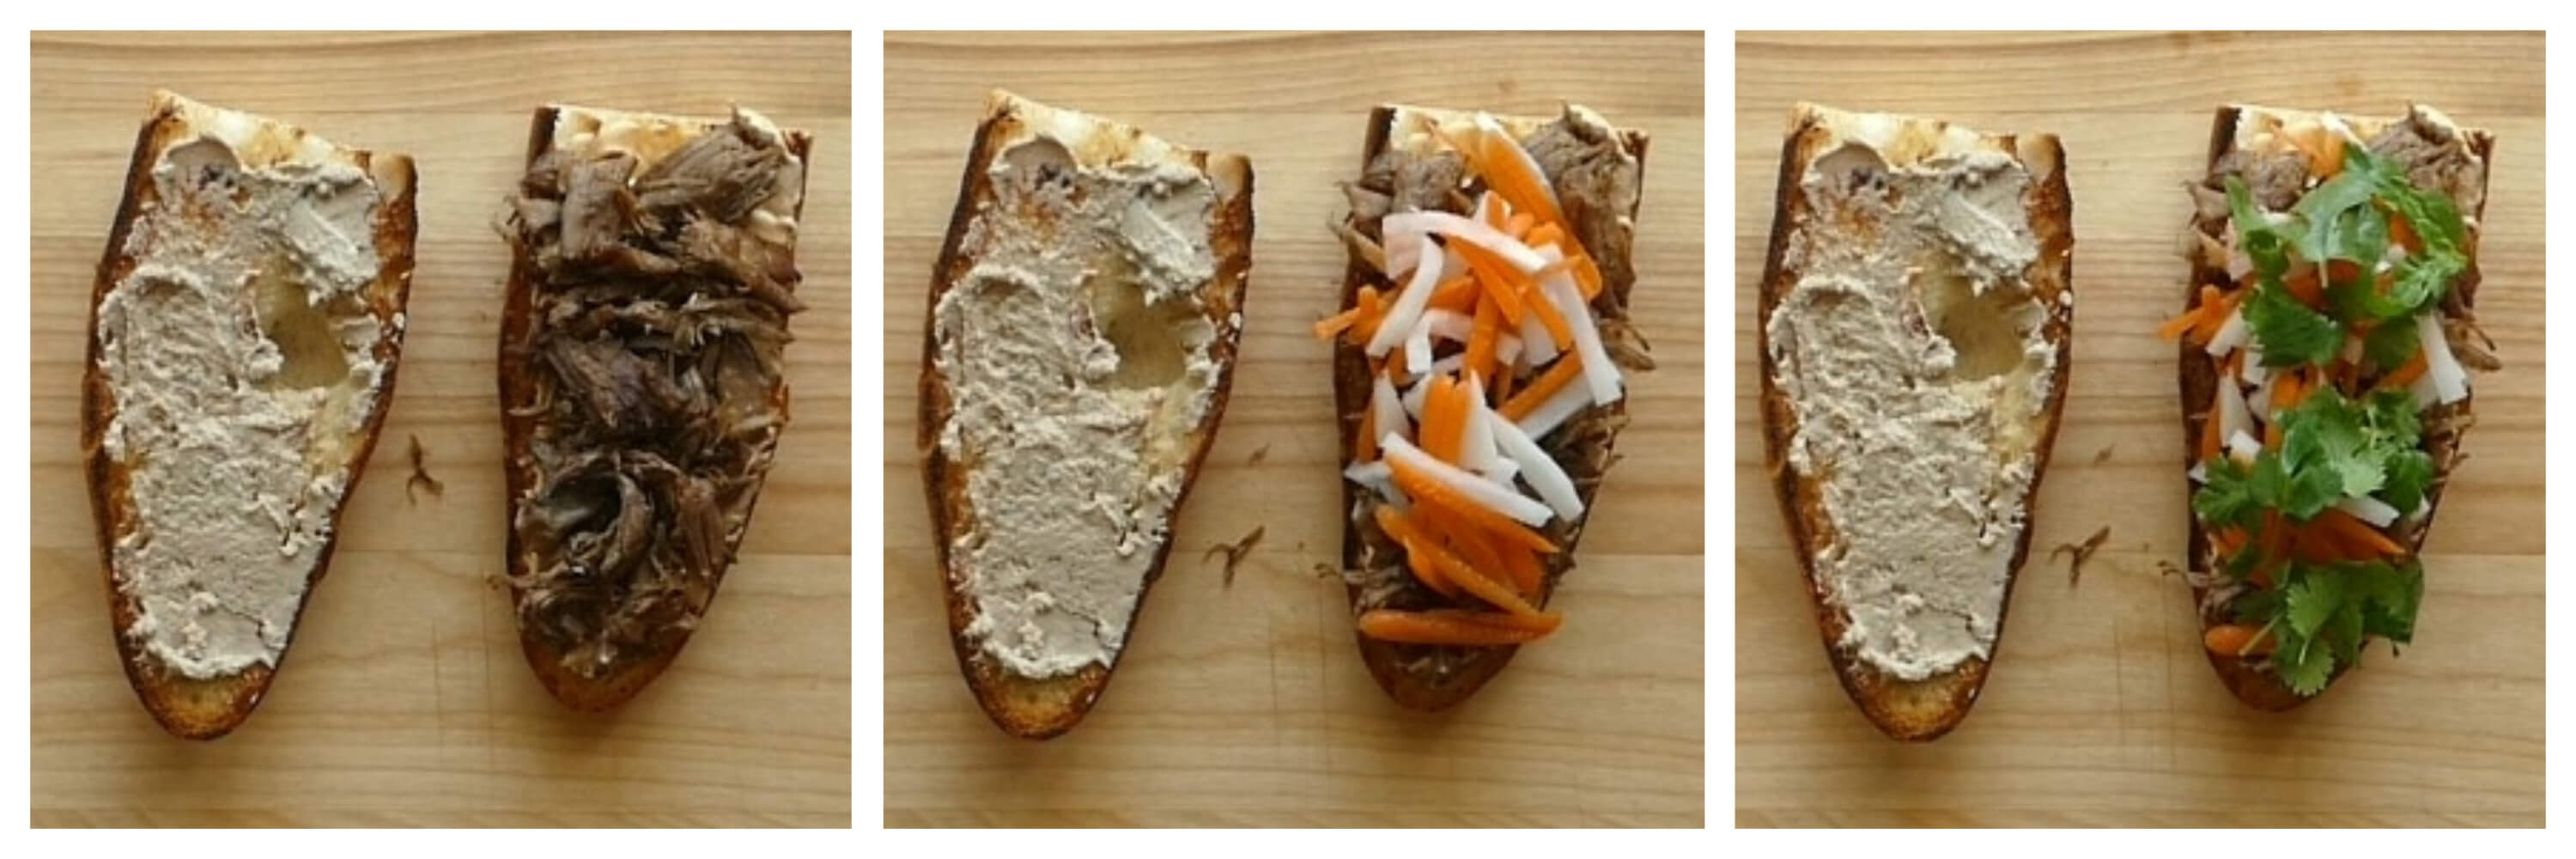 Instant Pot Banh Mi Instructions 4 collage - spread pate on second side, layer with meat, carrots and daikon, cilantro - Paint the Kitchen Red